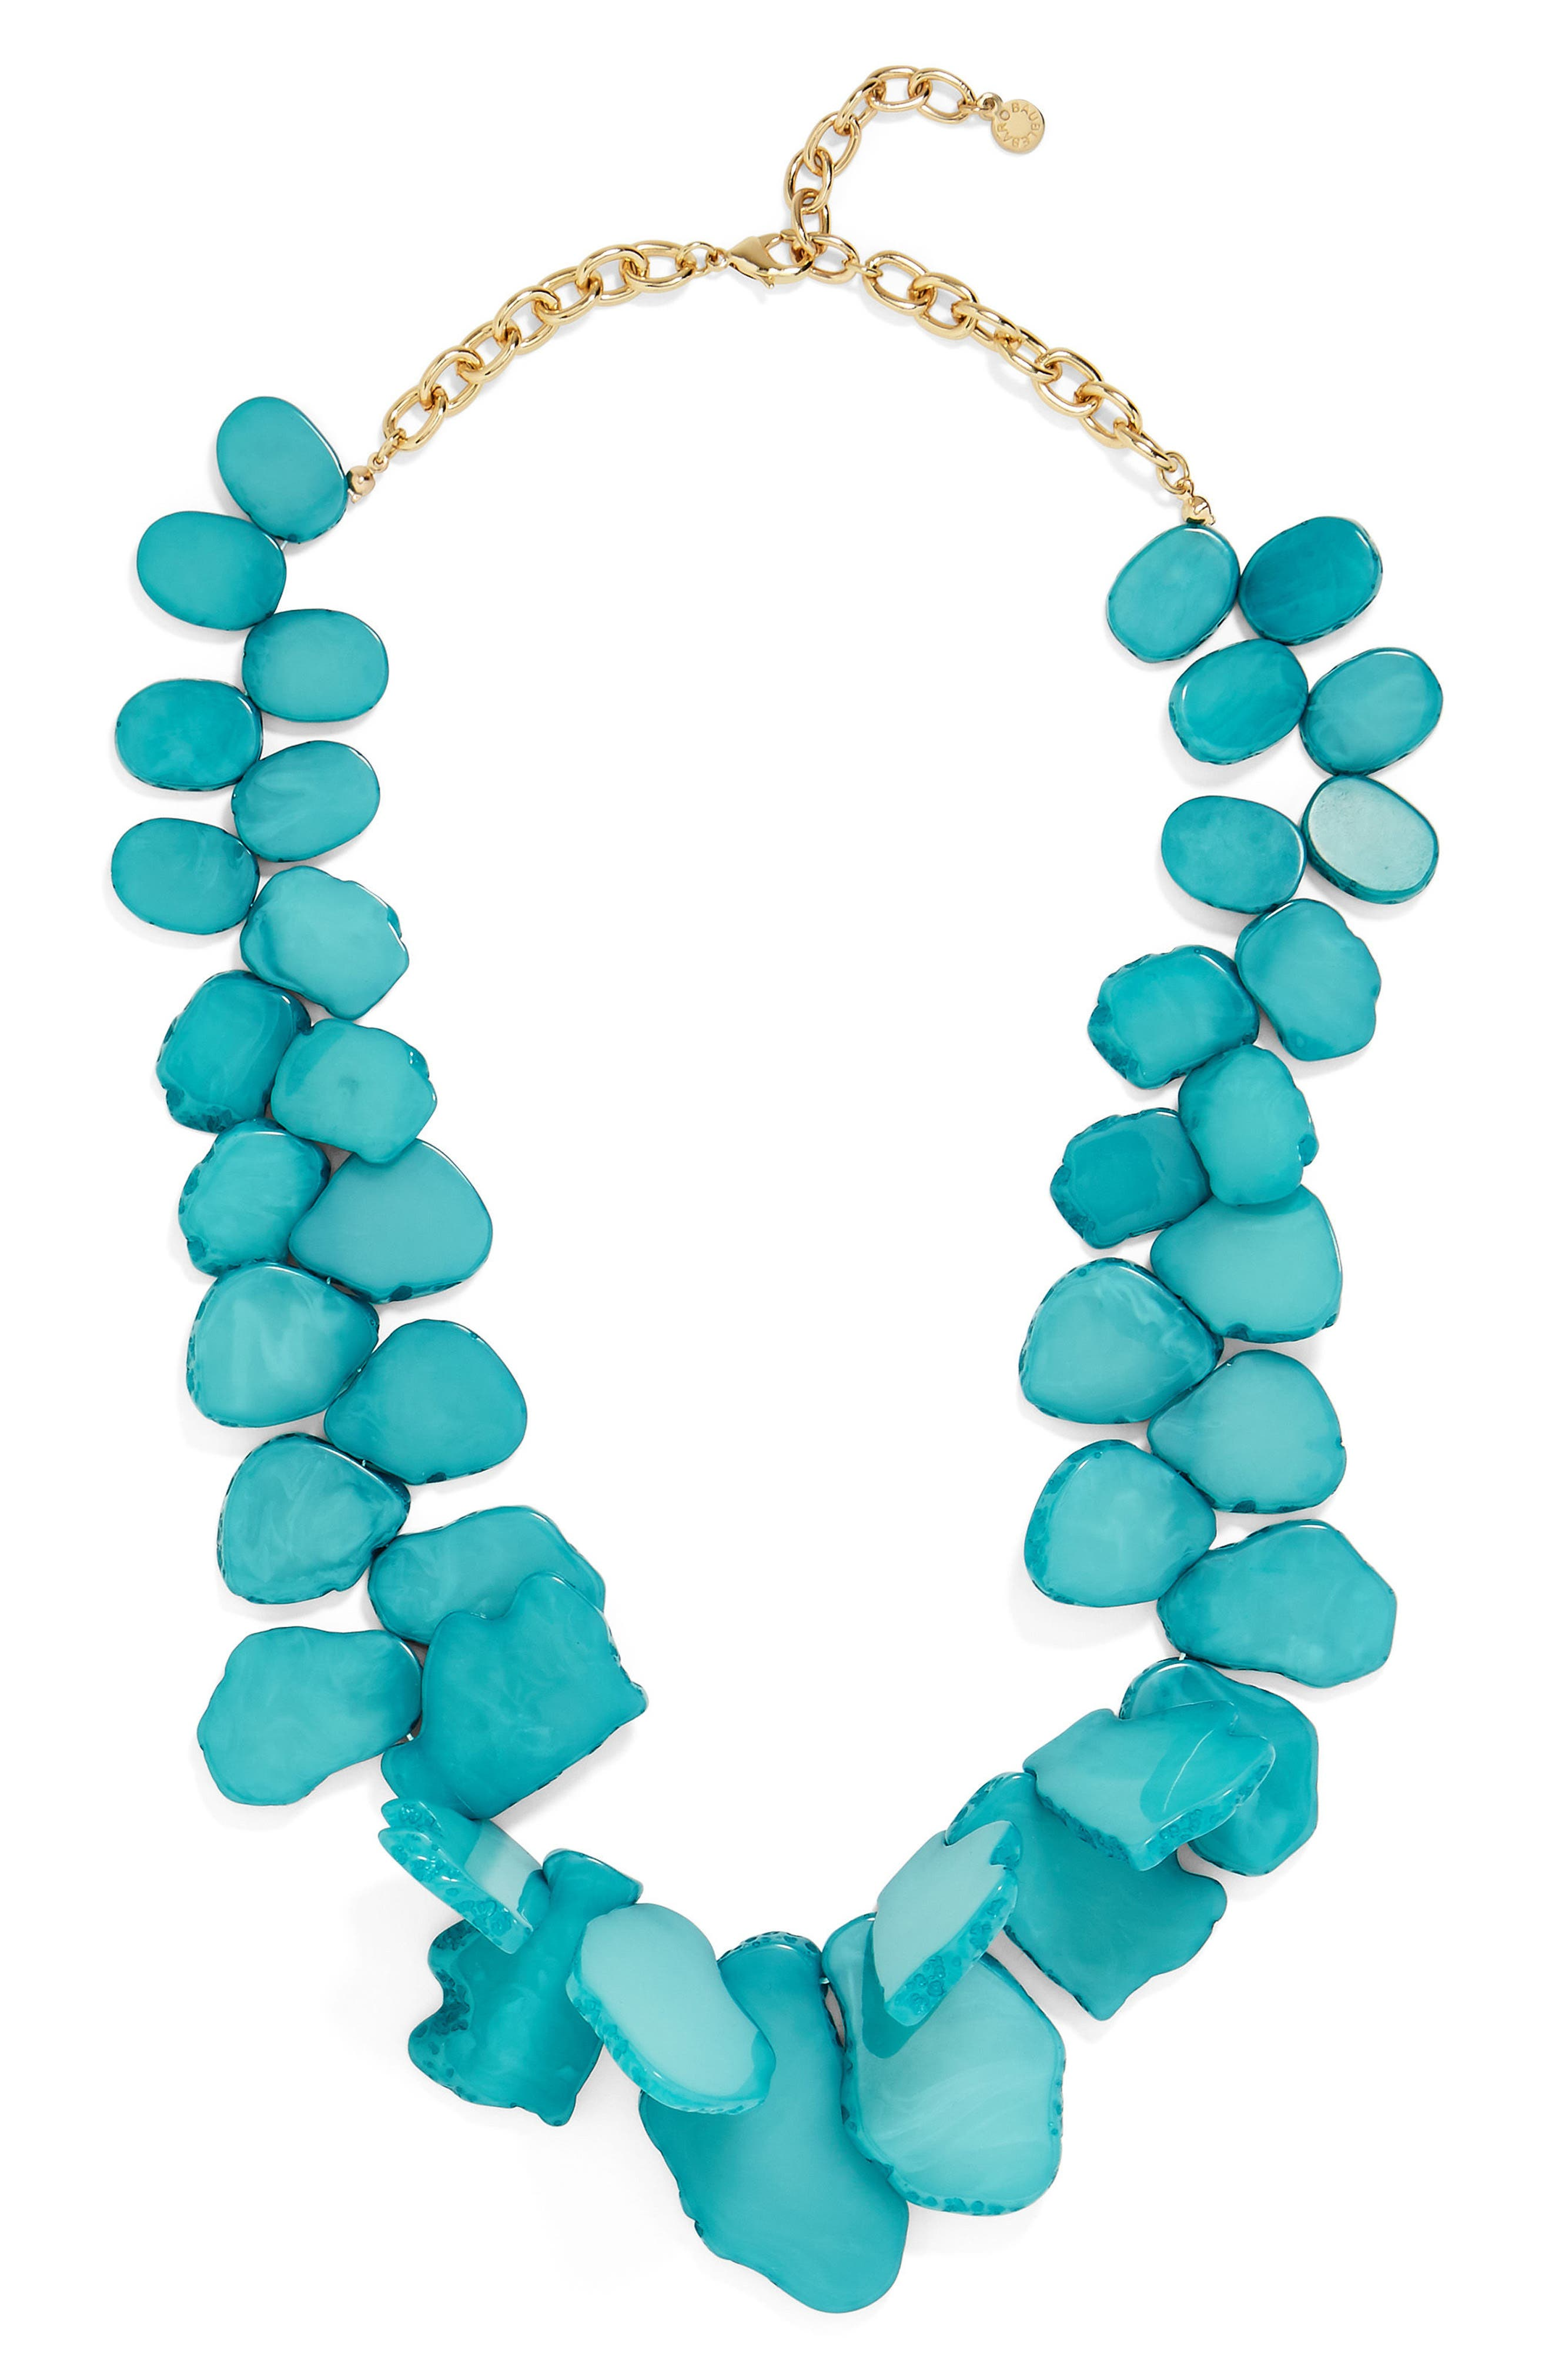 Alternate Image 1 Selected - BaubleBar 'Seaglass' Bib Necklace